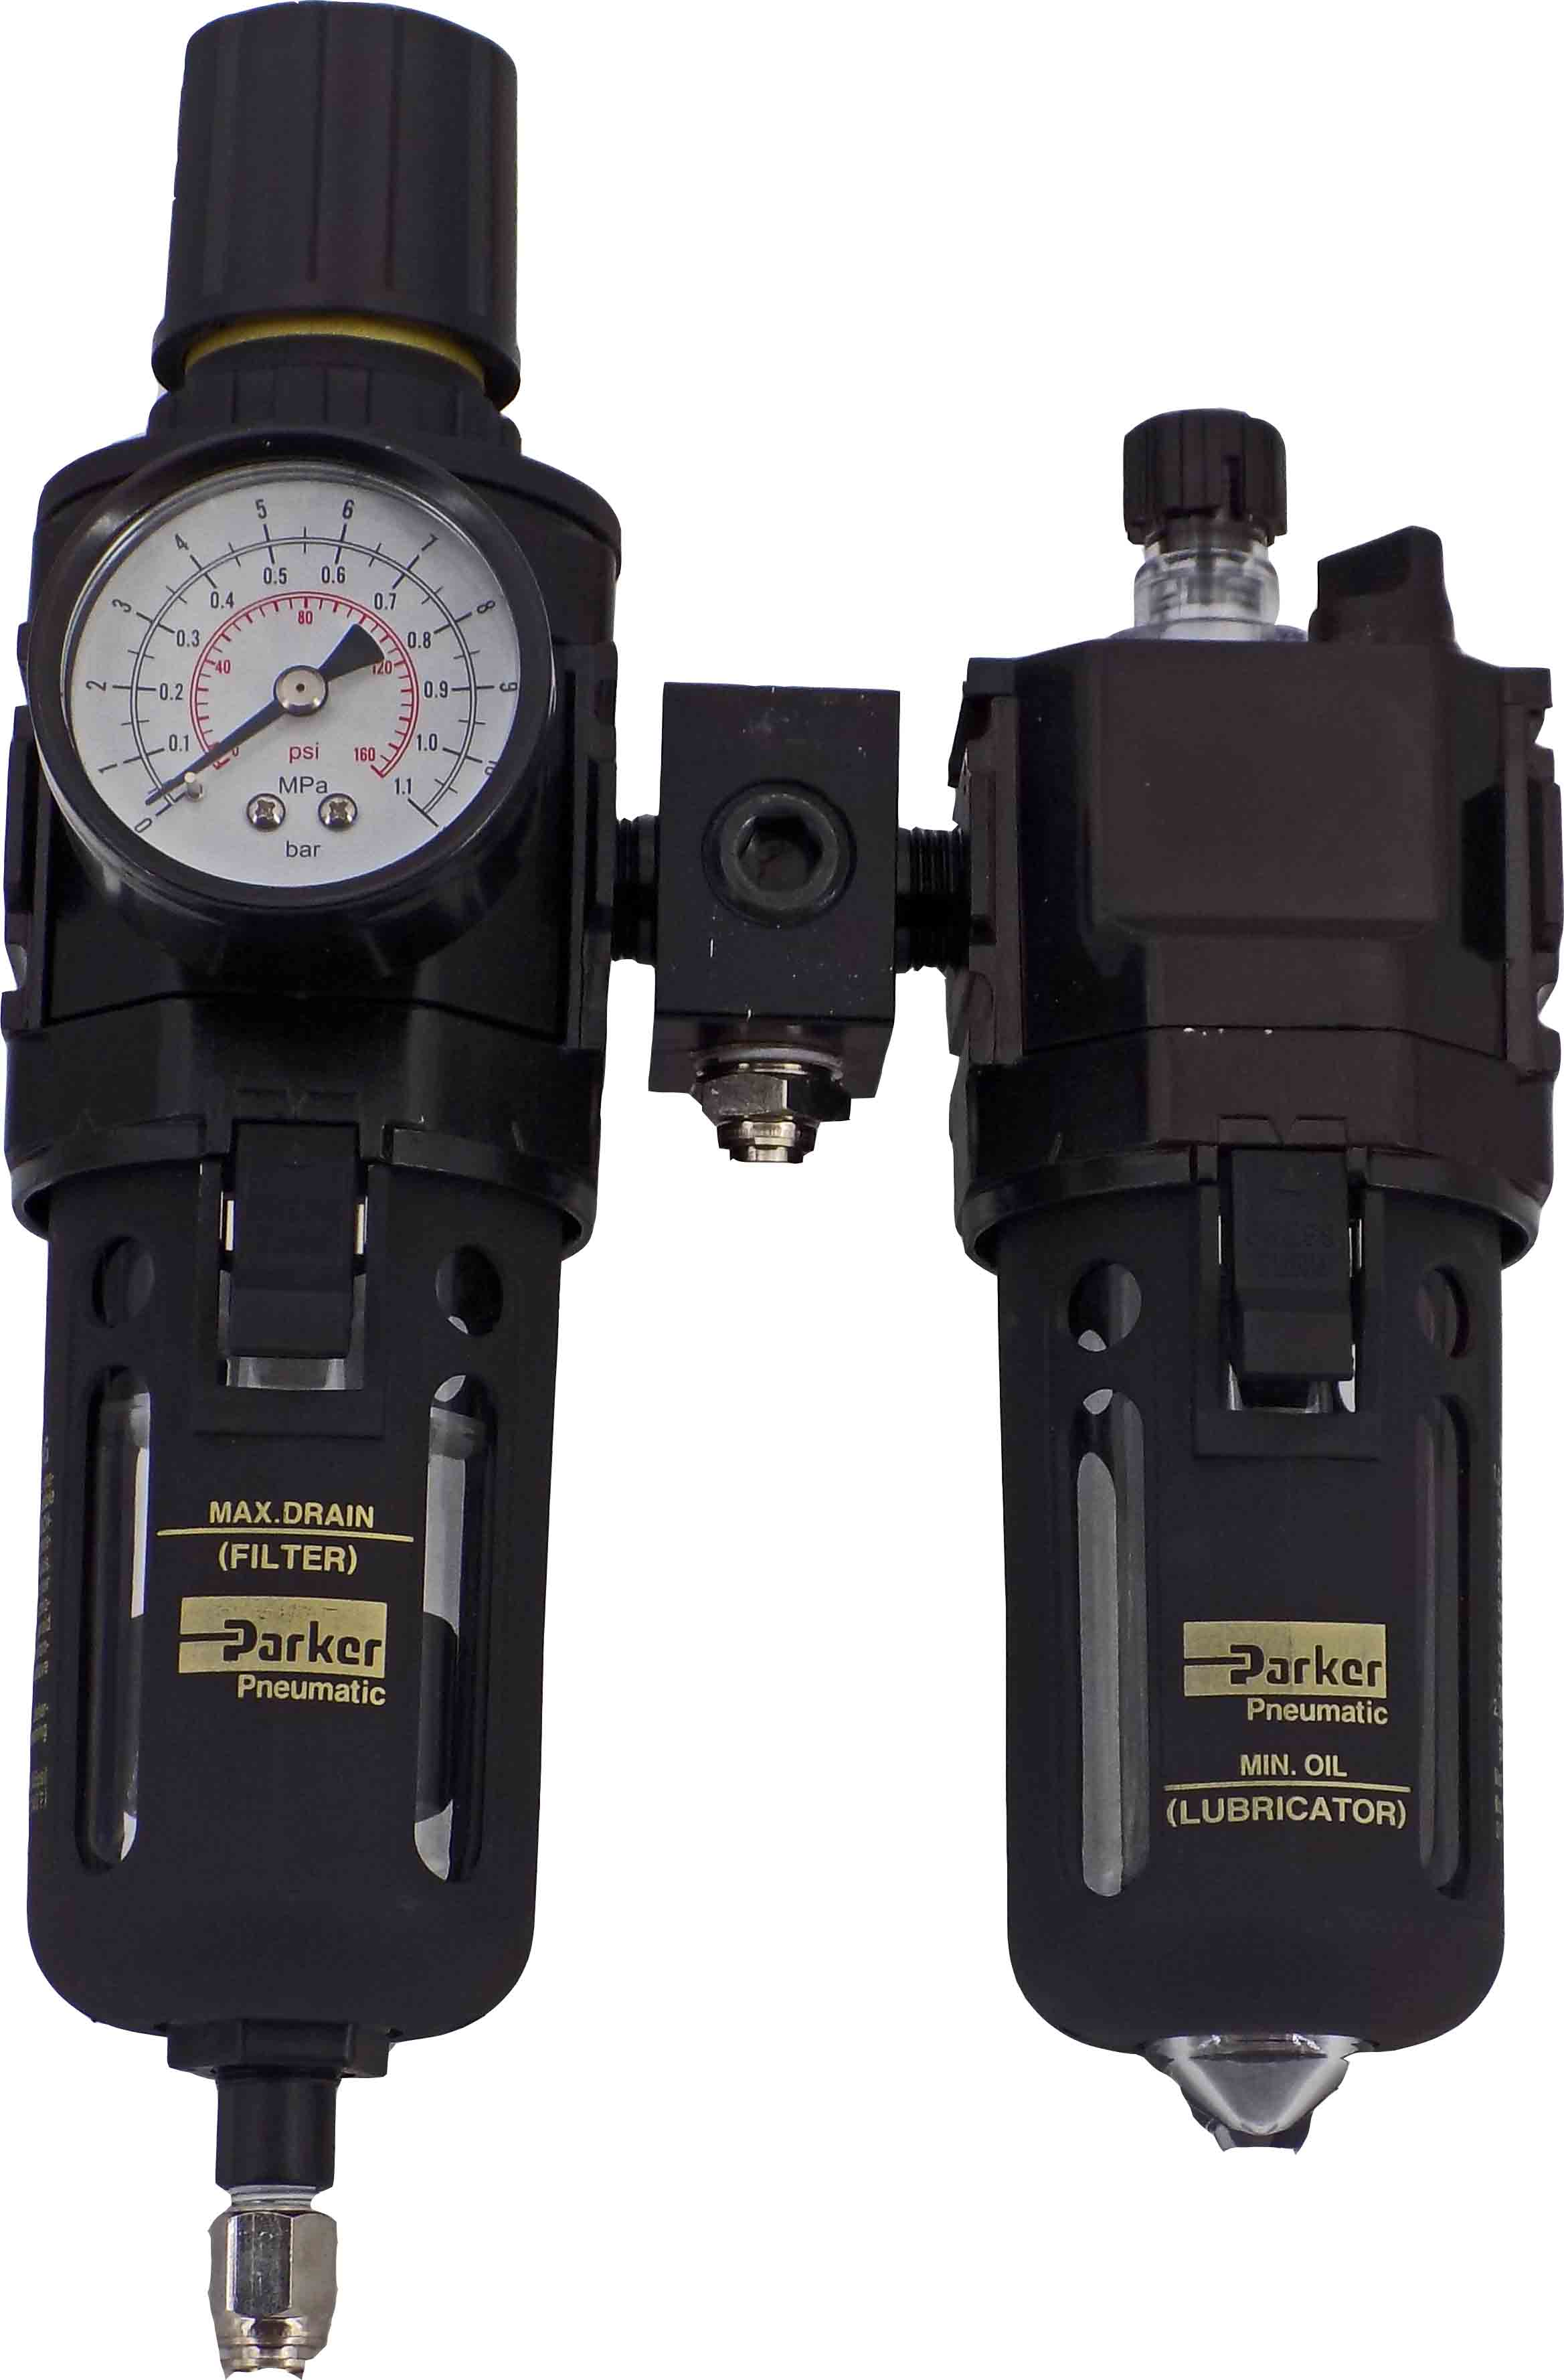 Complete Mindman Air Regulator Unit For Vulcan